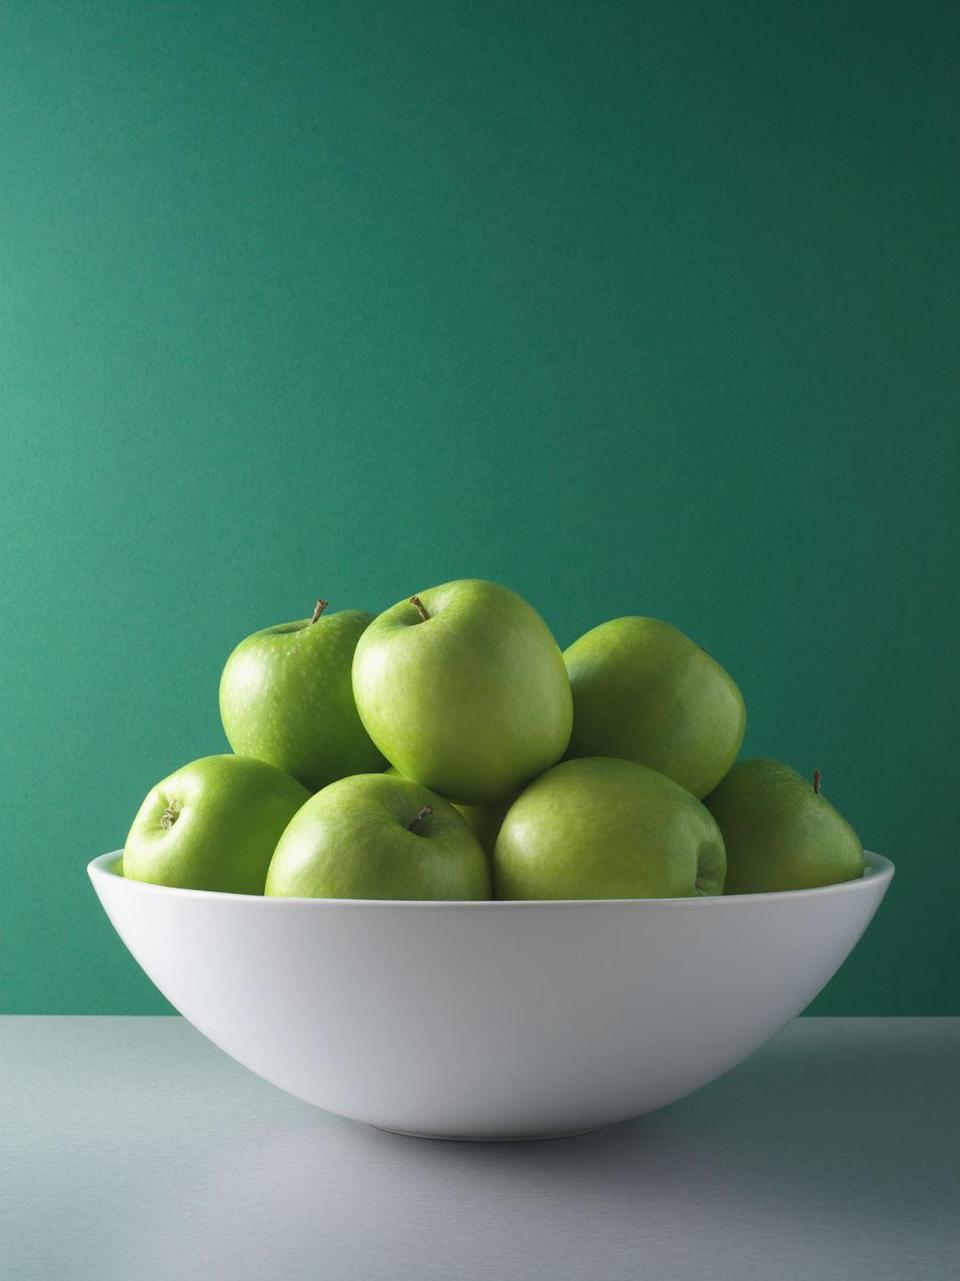 "<p>And set out a giant fruit bowl instead — you'll be more likely to reach for an apple or a banana. There really is something to the old adage ""Out of sight, out of mind,"" according to <strong>Dawn Jackson Blatner, R.D.N.</strong>, author of <em><a href=""https://www.amazon.com/Superfood-Swap-Without-C-R-P/dp/0544535553?tag=syn-yahoo-20&ascsubtag=%5Bartid%7C10055.g.25643343%5Bsrc%7Cyahoo-us"" rel=""nofollow noopener"" target=""_blank"" data-ylk=""slk:The Superfood Swap"" class=""link rapid-noclick-resp"">The Superfood Swap</a></em>. In your pantry, move <a href=""https://www.goodhousekeeping.com/food-recipes/healthy/g607/quinoa-recipes/"" rel=""nofollow noopener"" target=""_blank"" data-ylk=""slk:healthy staples like quinoa"" class=""link rapid-noclick-resp"">healthy staples like quinoa</a>, nuts, and canned beans to the front of shelves at eye level and put less healthy snacks and sweets on a high shelf.</p>"